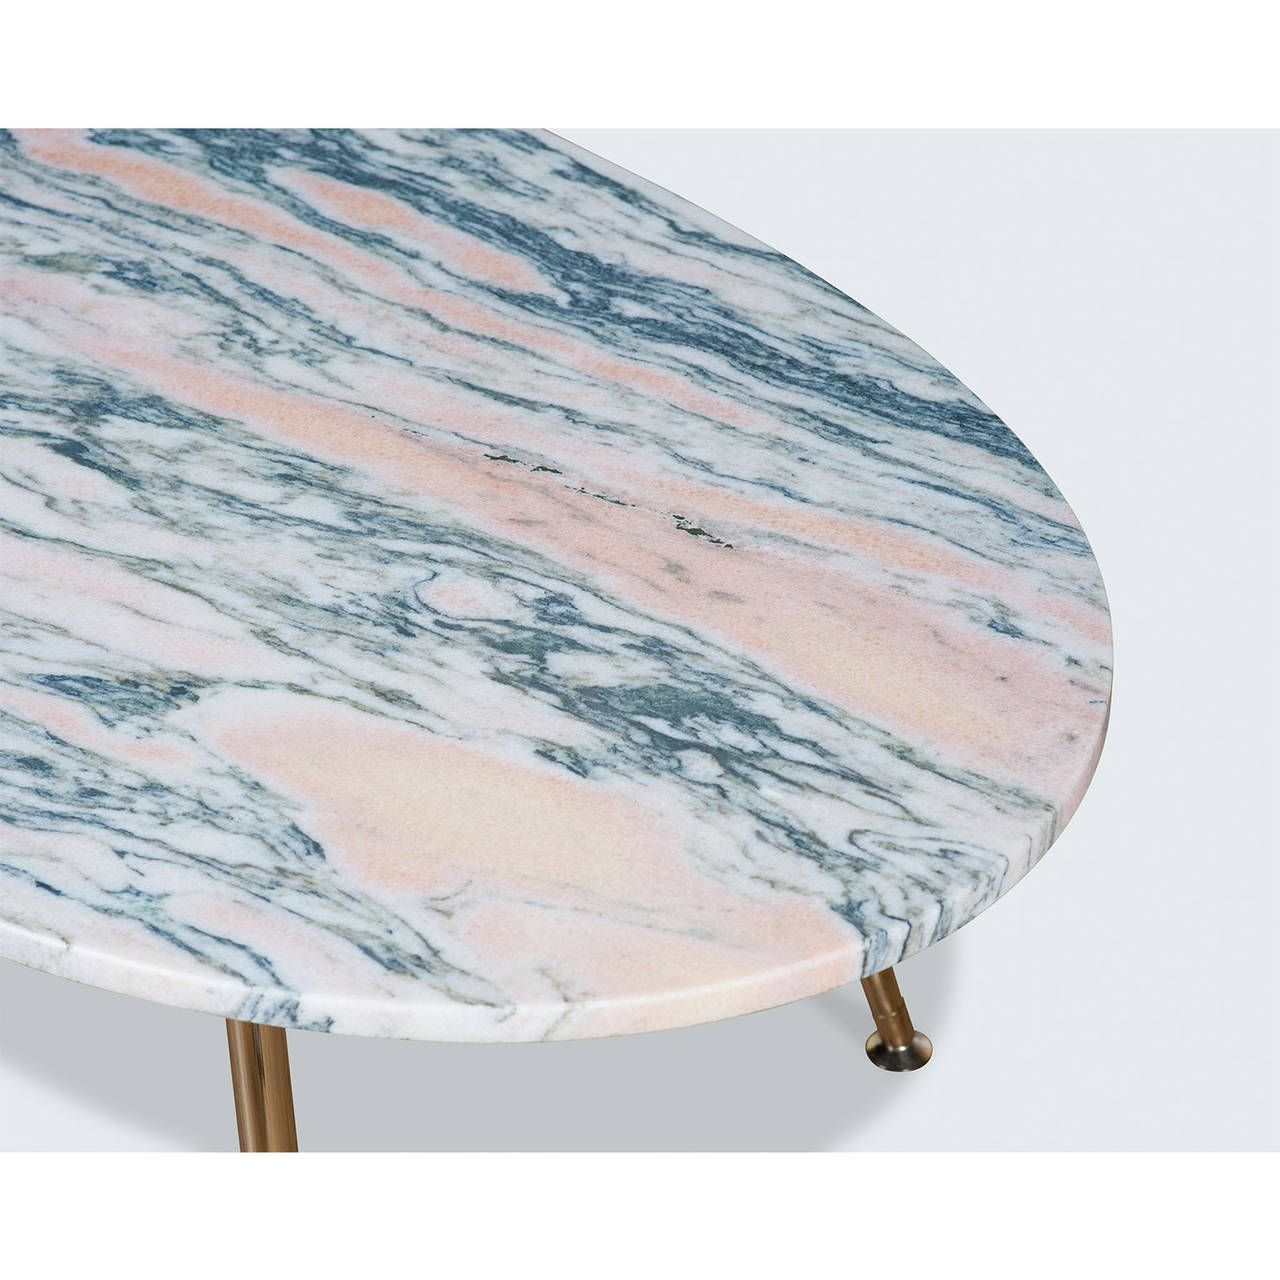 Pink Marble Coffee Table With Brass Legs By Modern Times | From A Unique  Collection Of